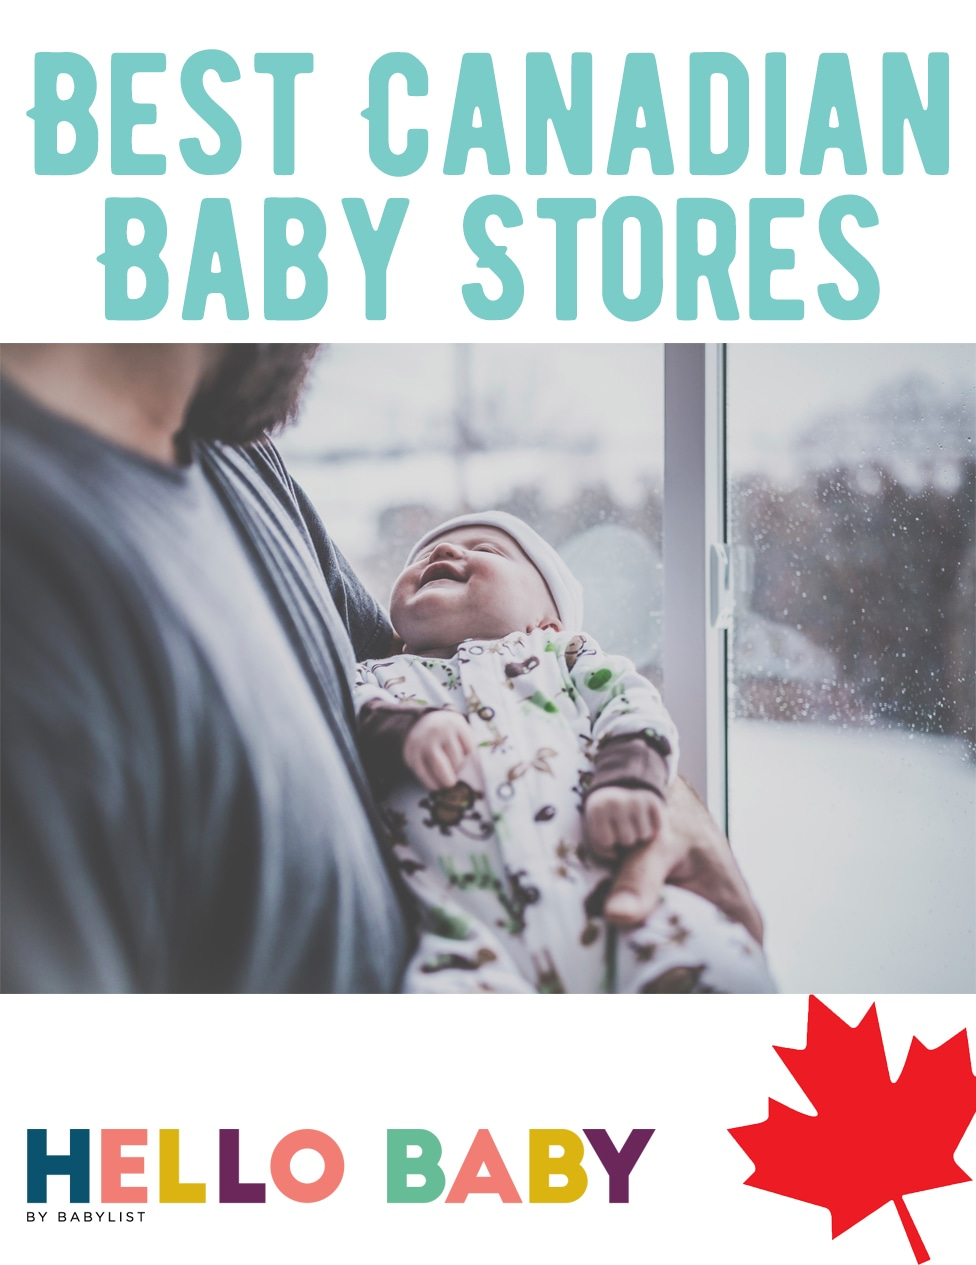 We love the Great White North, so we've put together a list of the best baby stores in Canada.